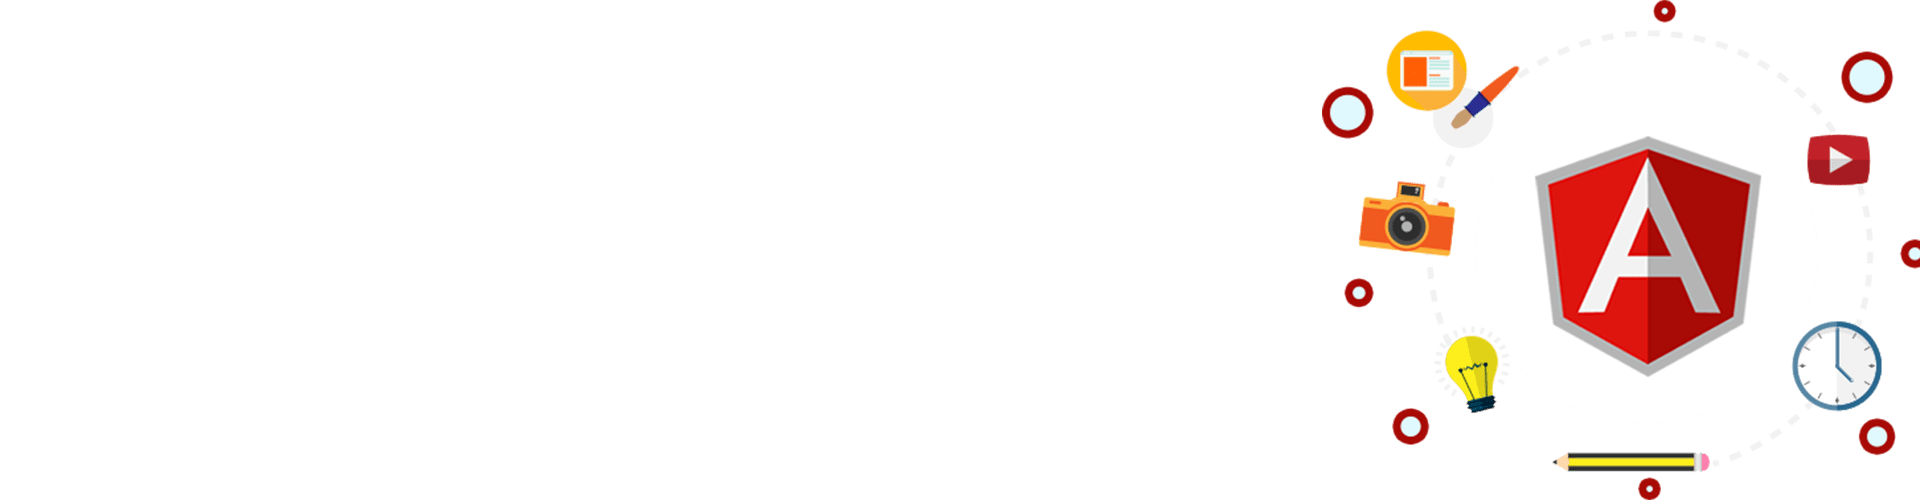 Best AngularJS development company